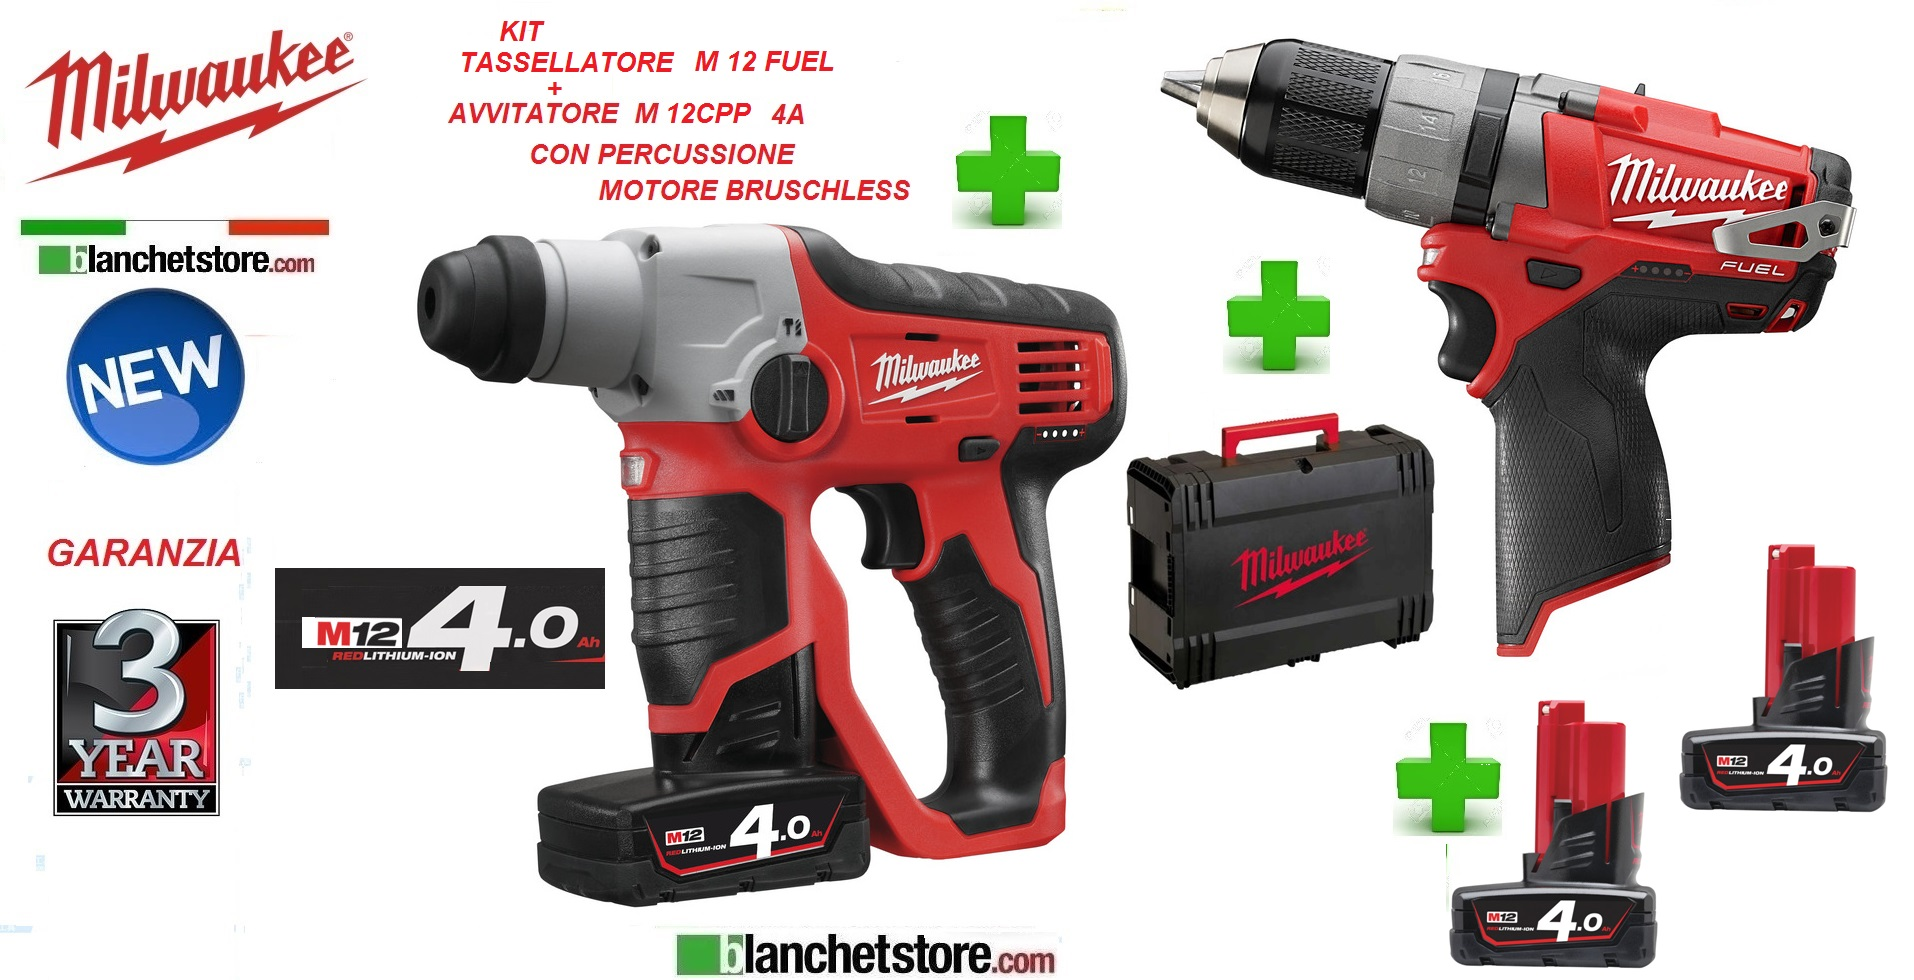 Kit Milwaukee M12Fuel tassellatore+avvitatore Bruschless 12V 4A